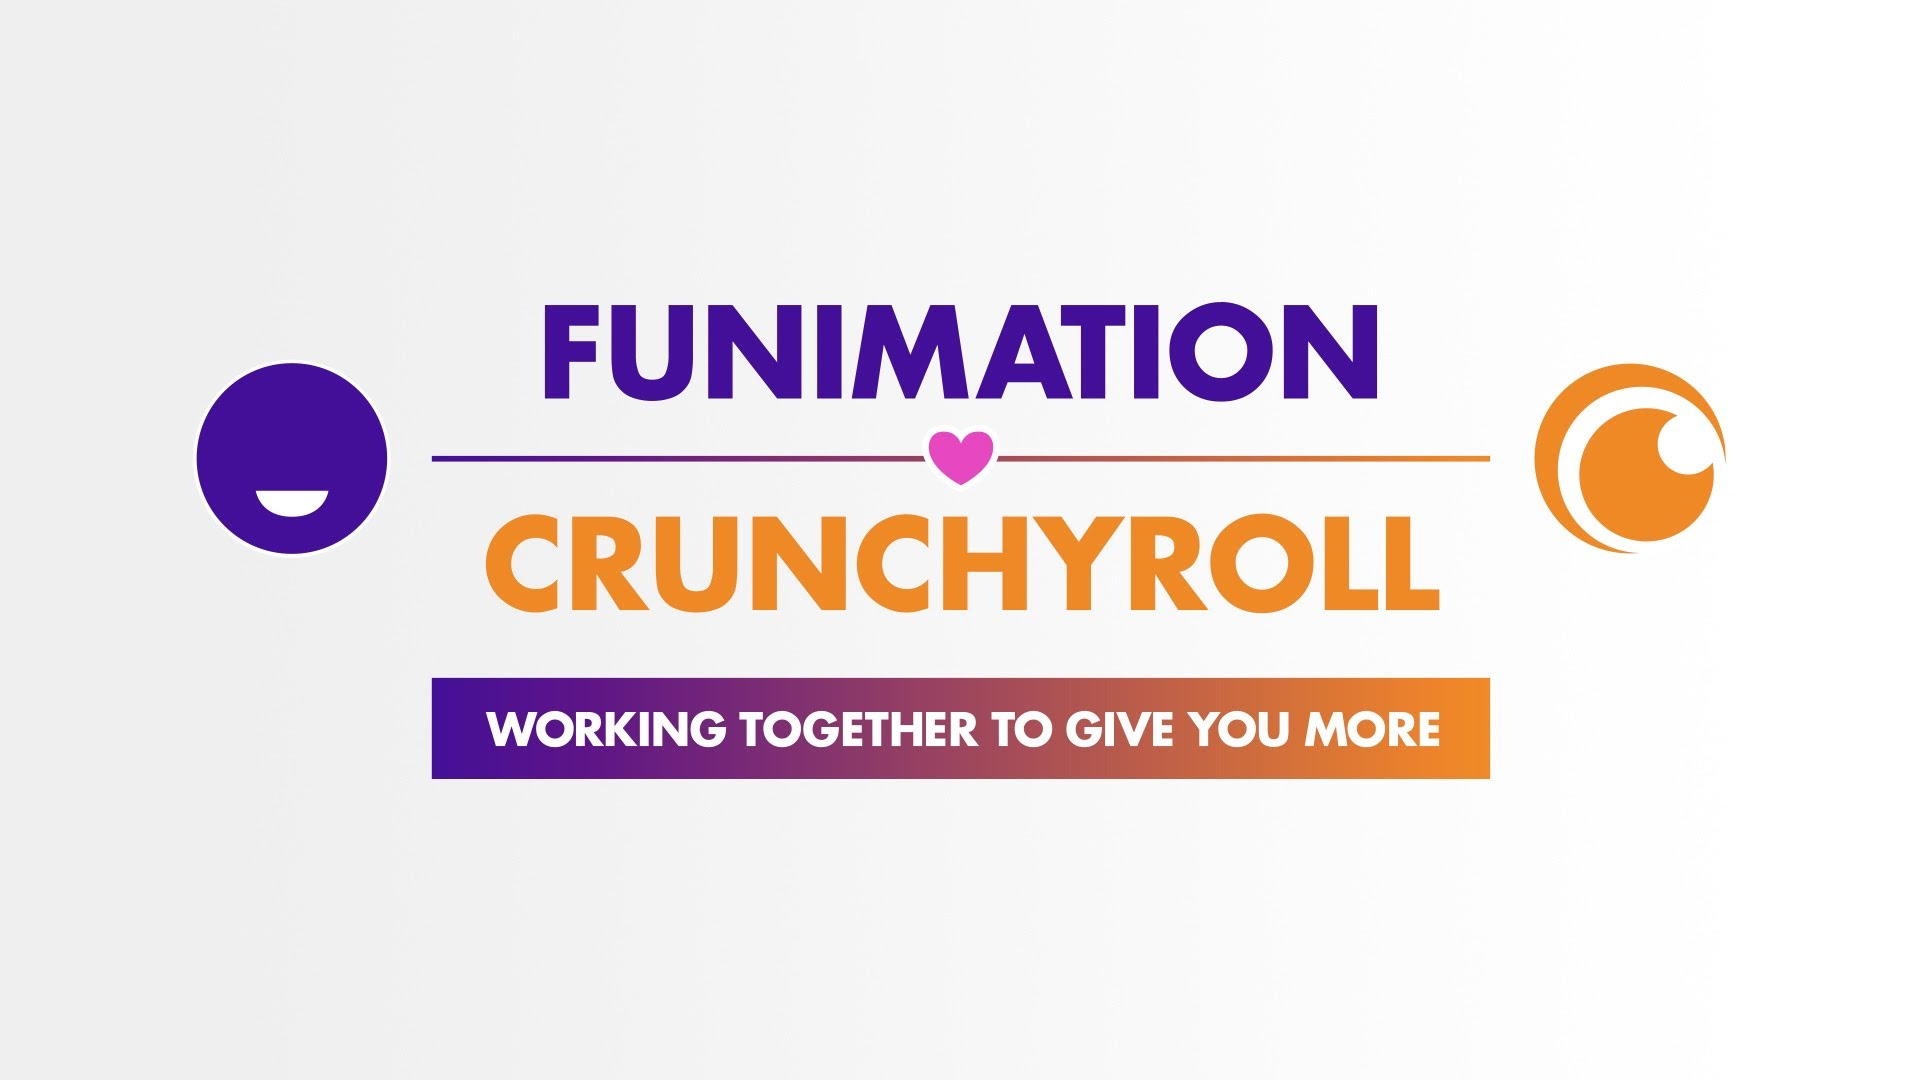 Crunchyroll x Funimation Partnership, What Does it Mean?